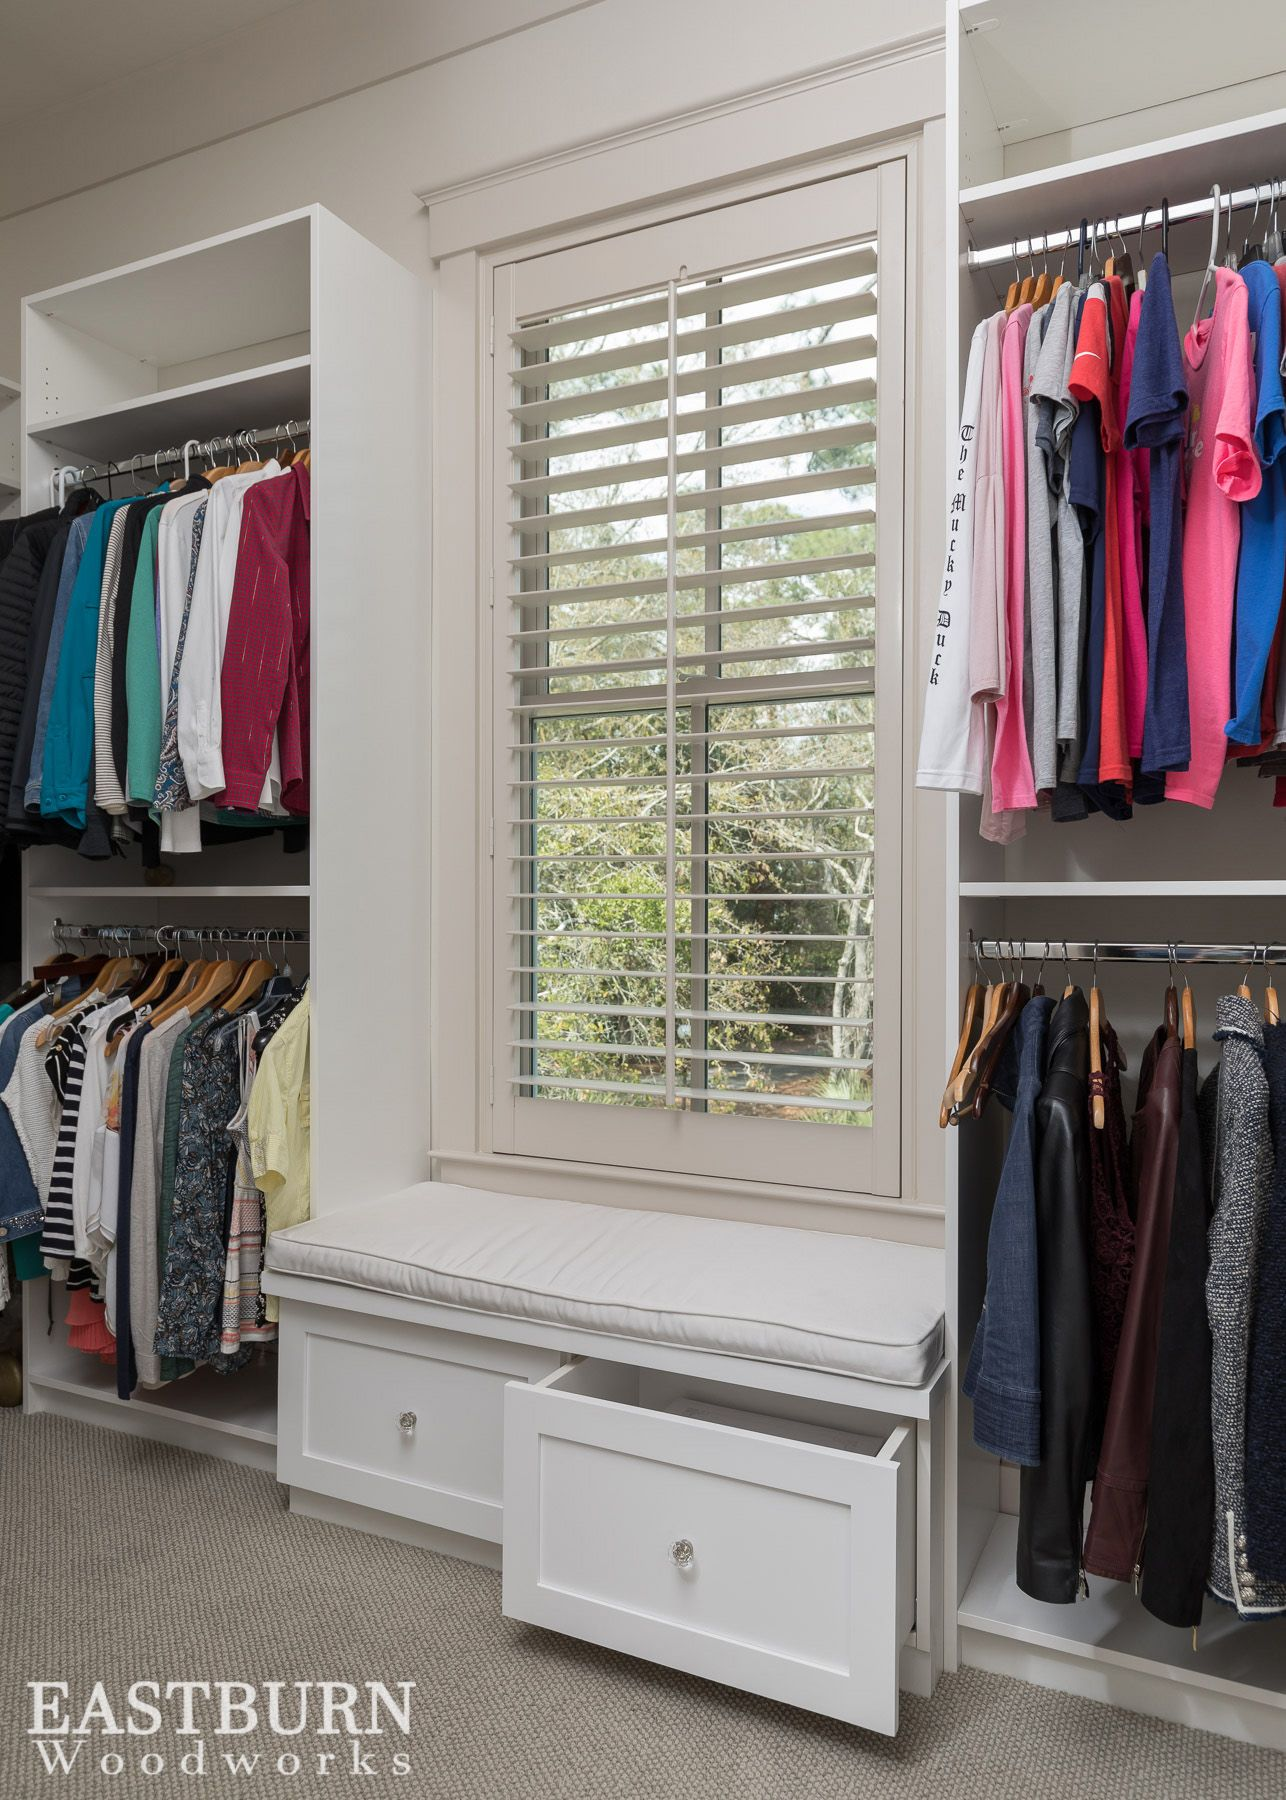 Her Master Closet With A White Bench And Storage Drawers Master Bedroom Closet Closet Remodel Master Bedroom Closets Organization